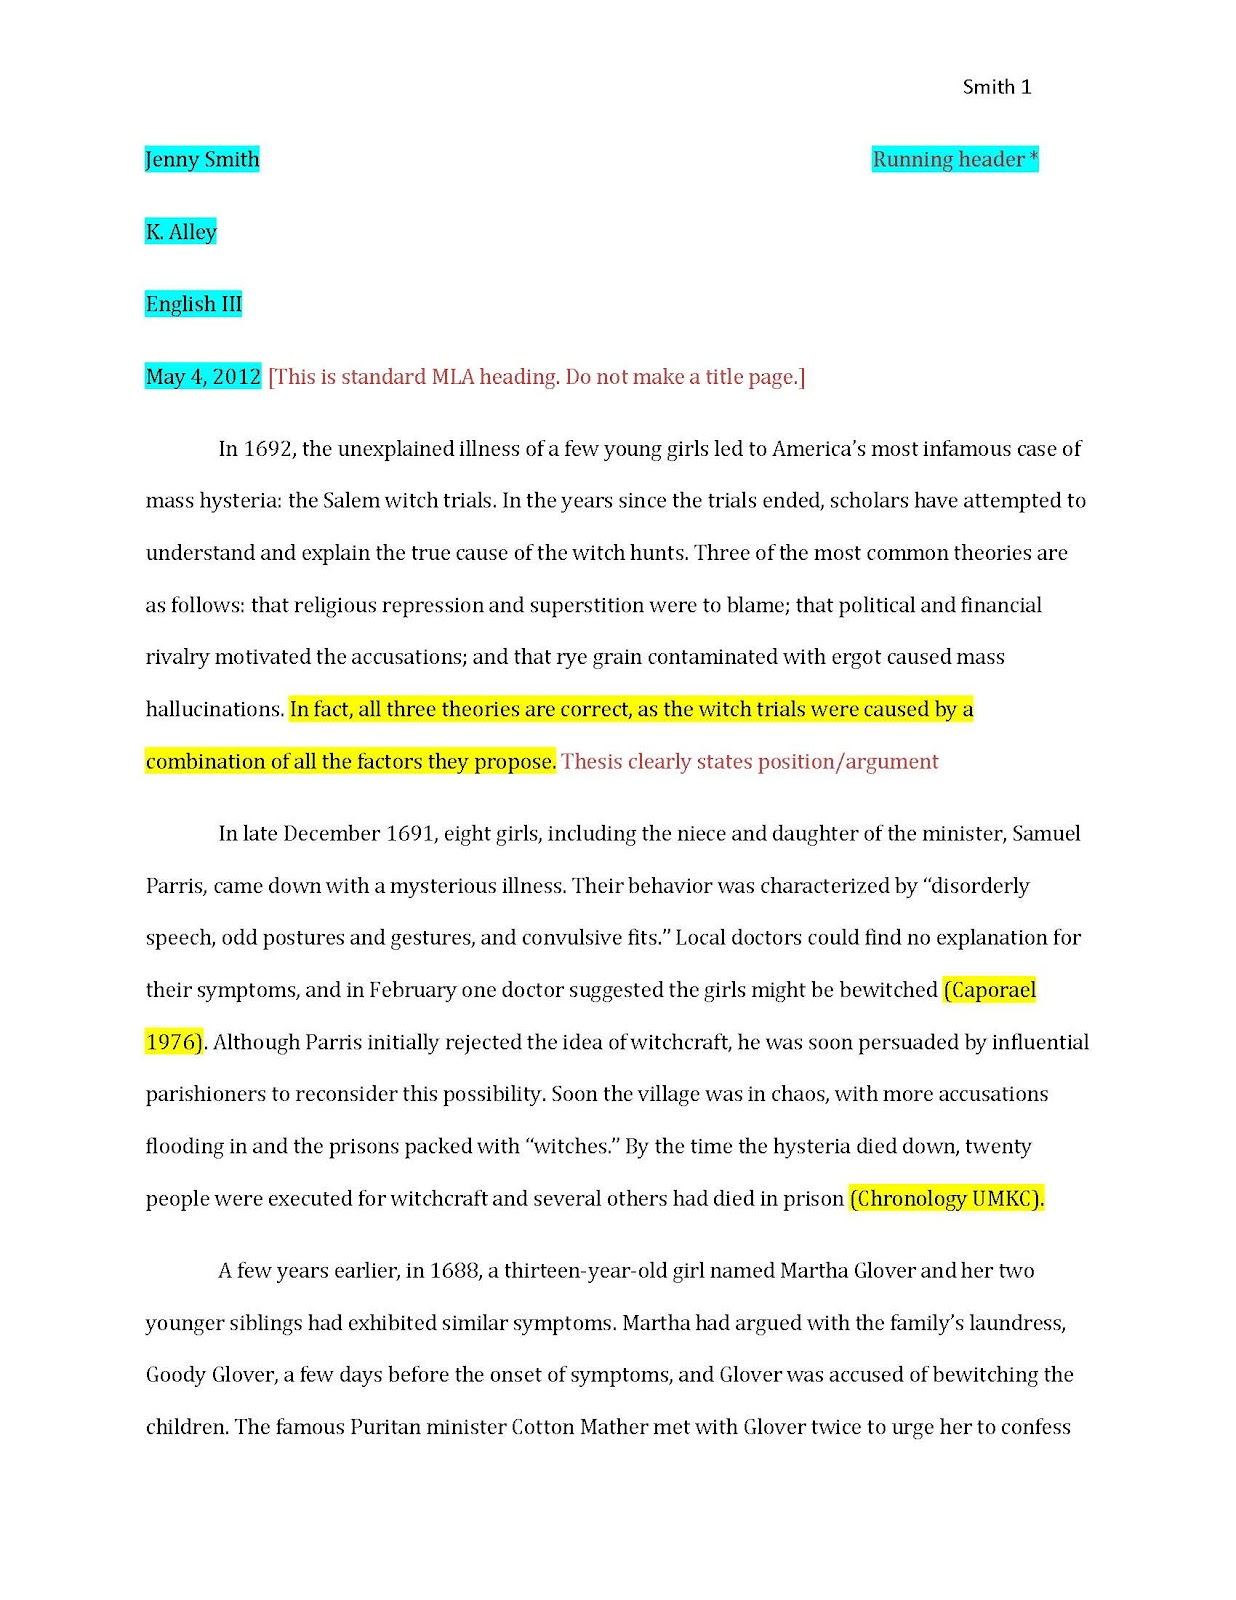 Research apa style paper